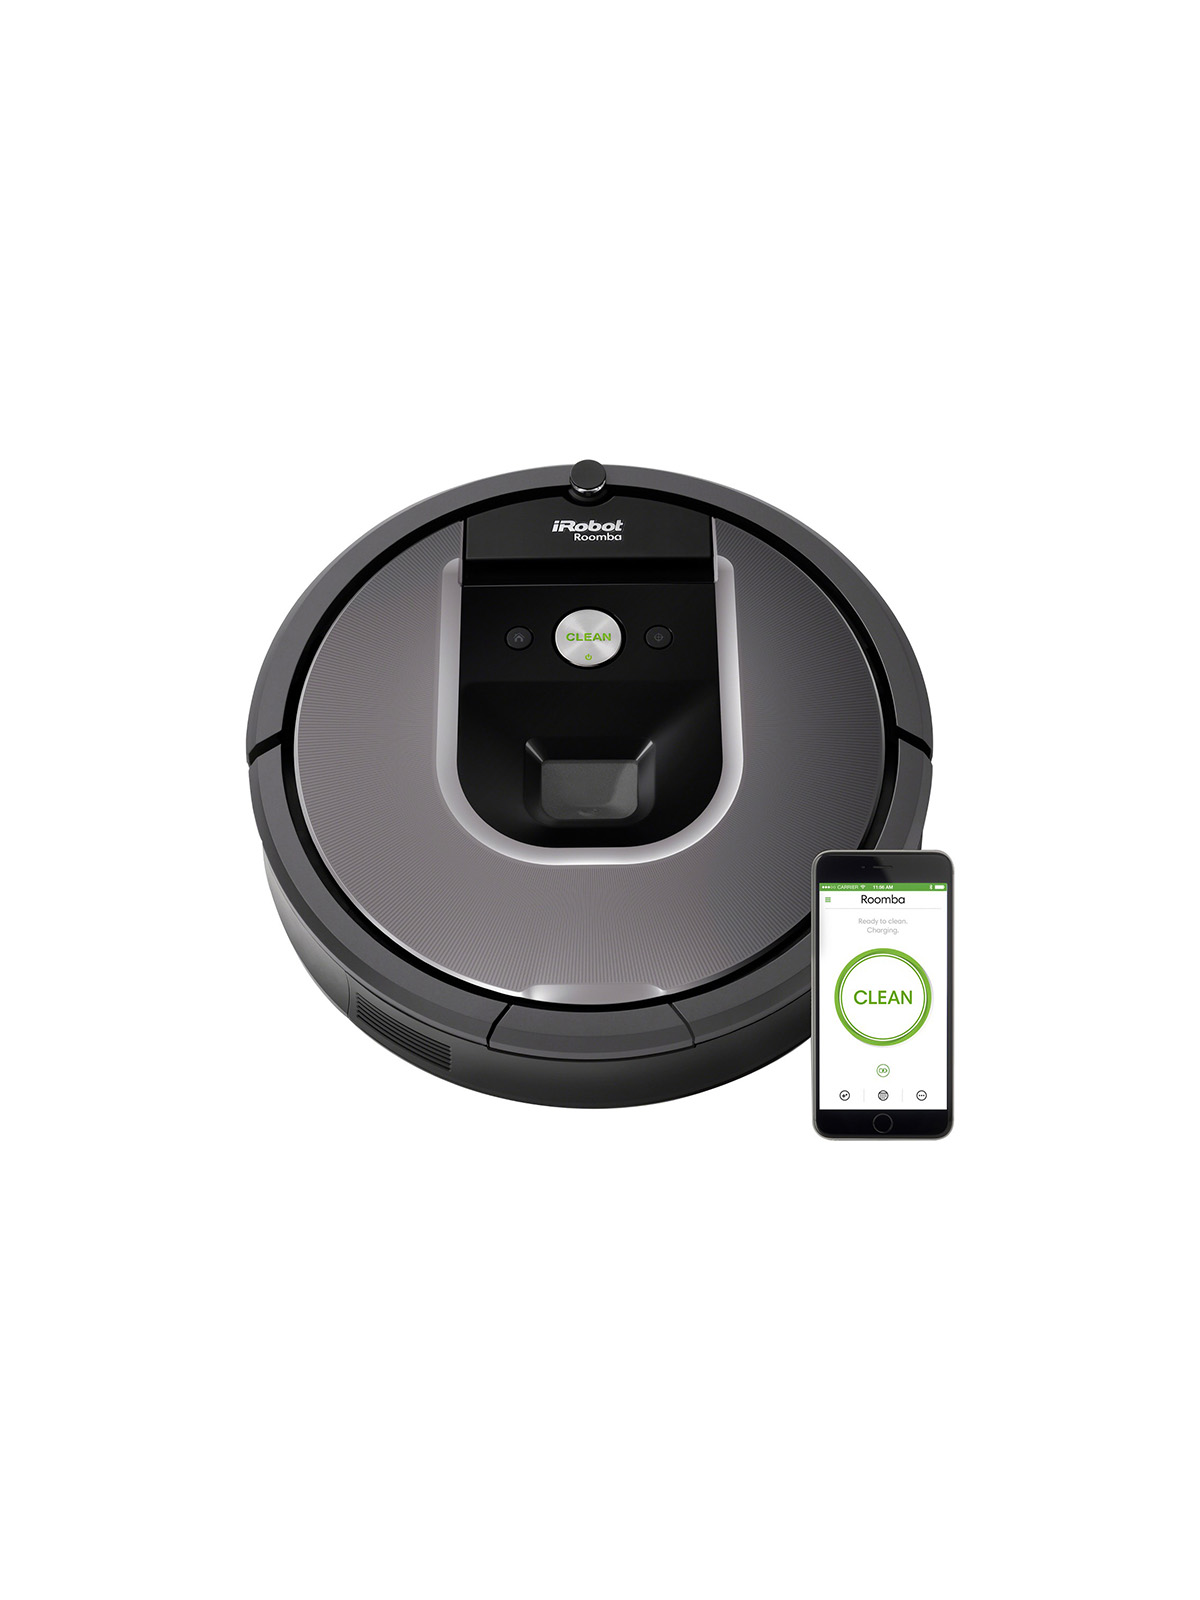 A Roomba 960 Robotic Vacuum to Do Your Chores